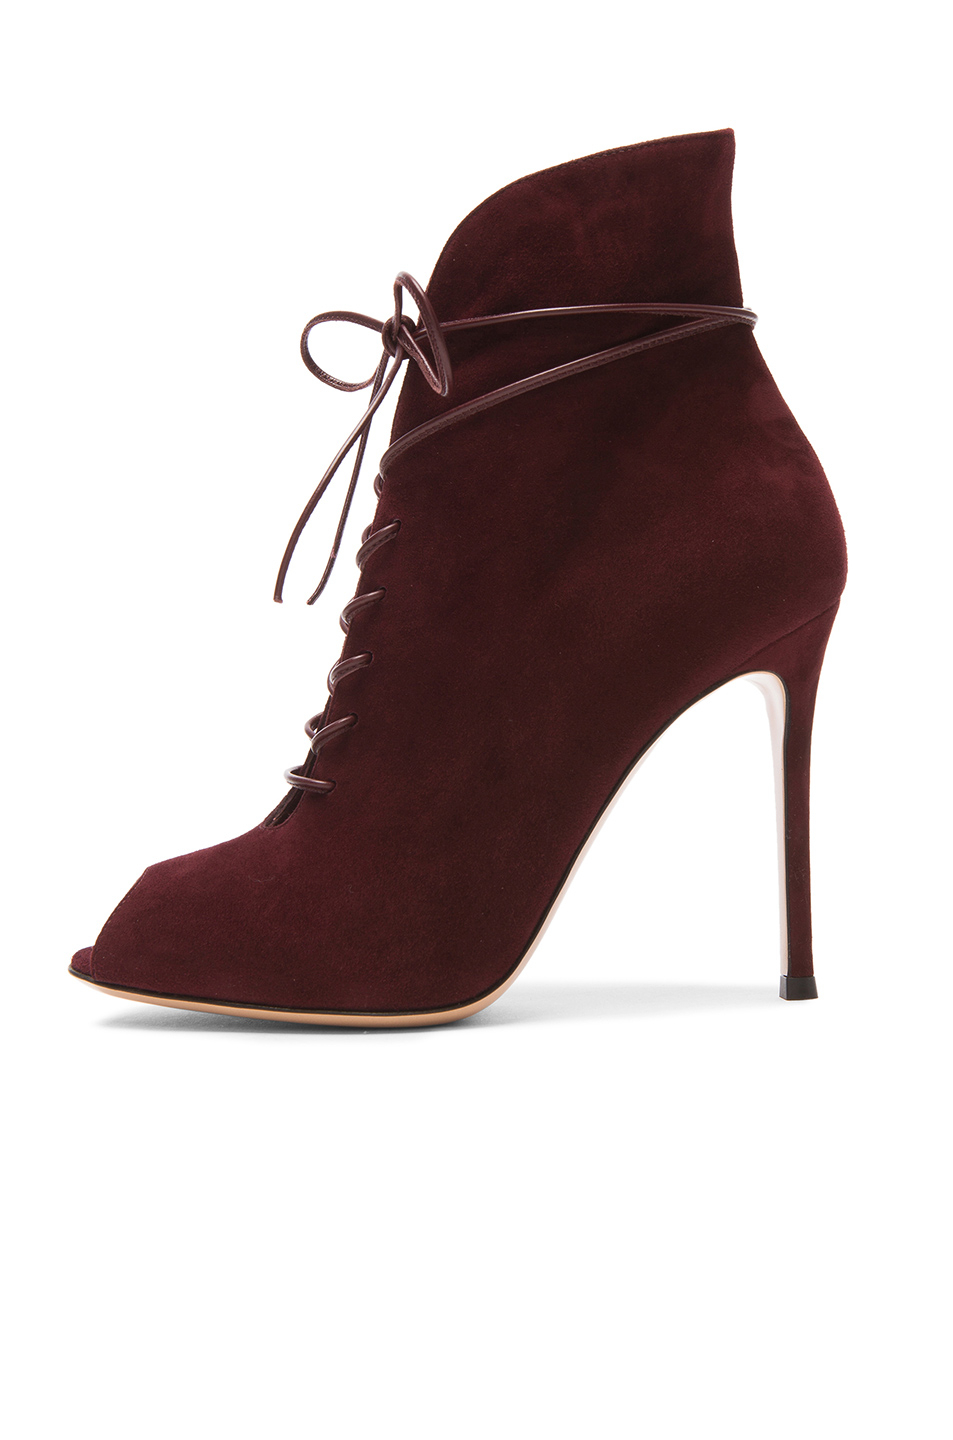 Gianvito Rossi Peep-Toe Lace Ankle Boots extremely cheap price i2Xl1U77i